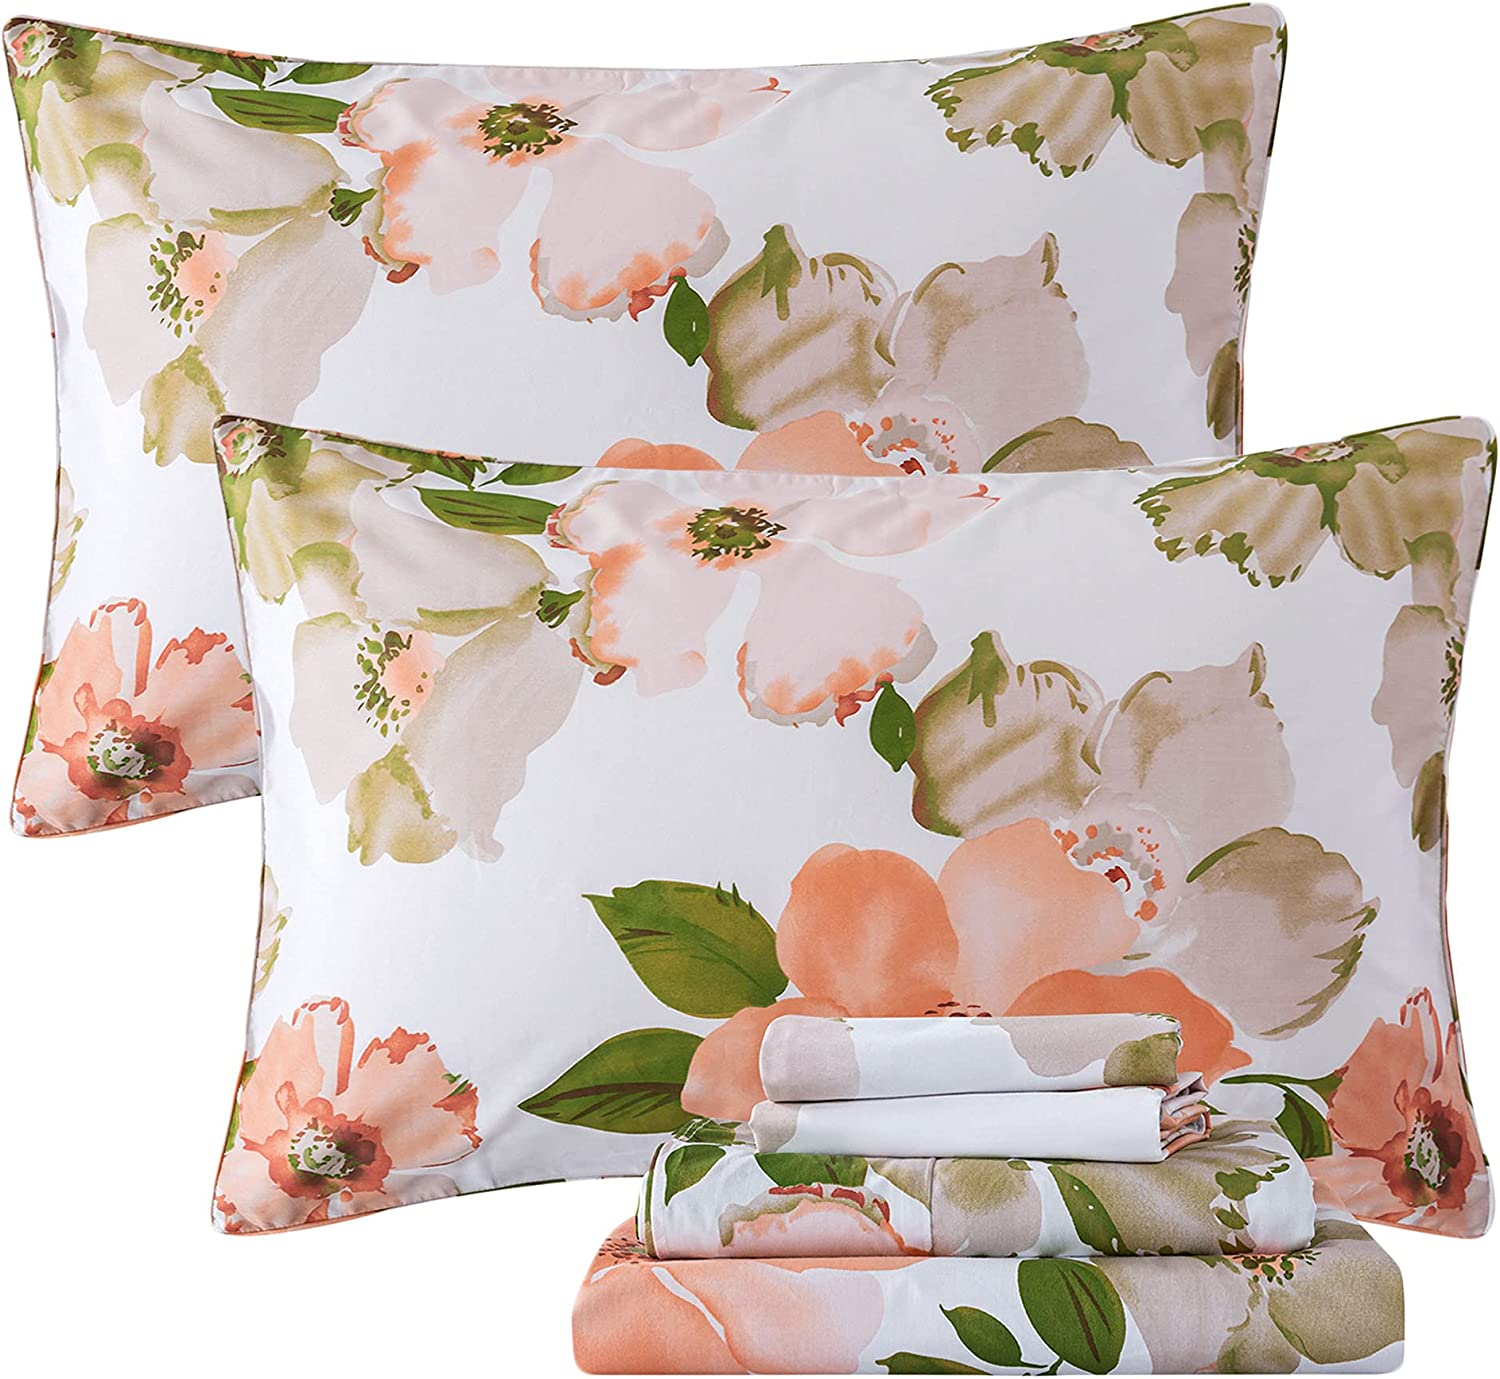 FADFAY ! Super beauty product restock quality top! Sheets Set King Elegant Tampa Mall Floral Shabby Watercolor Bedding